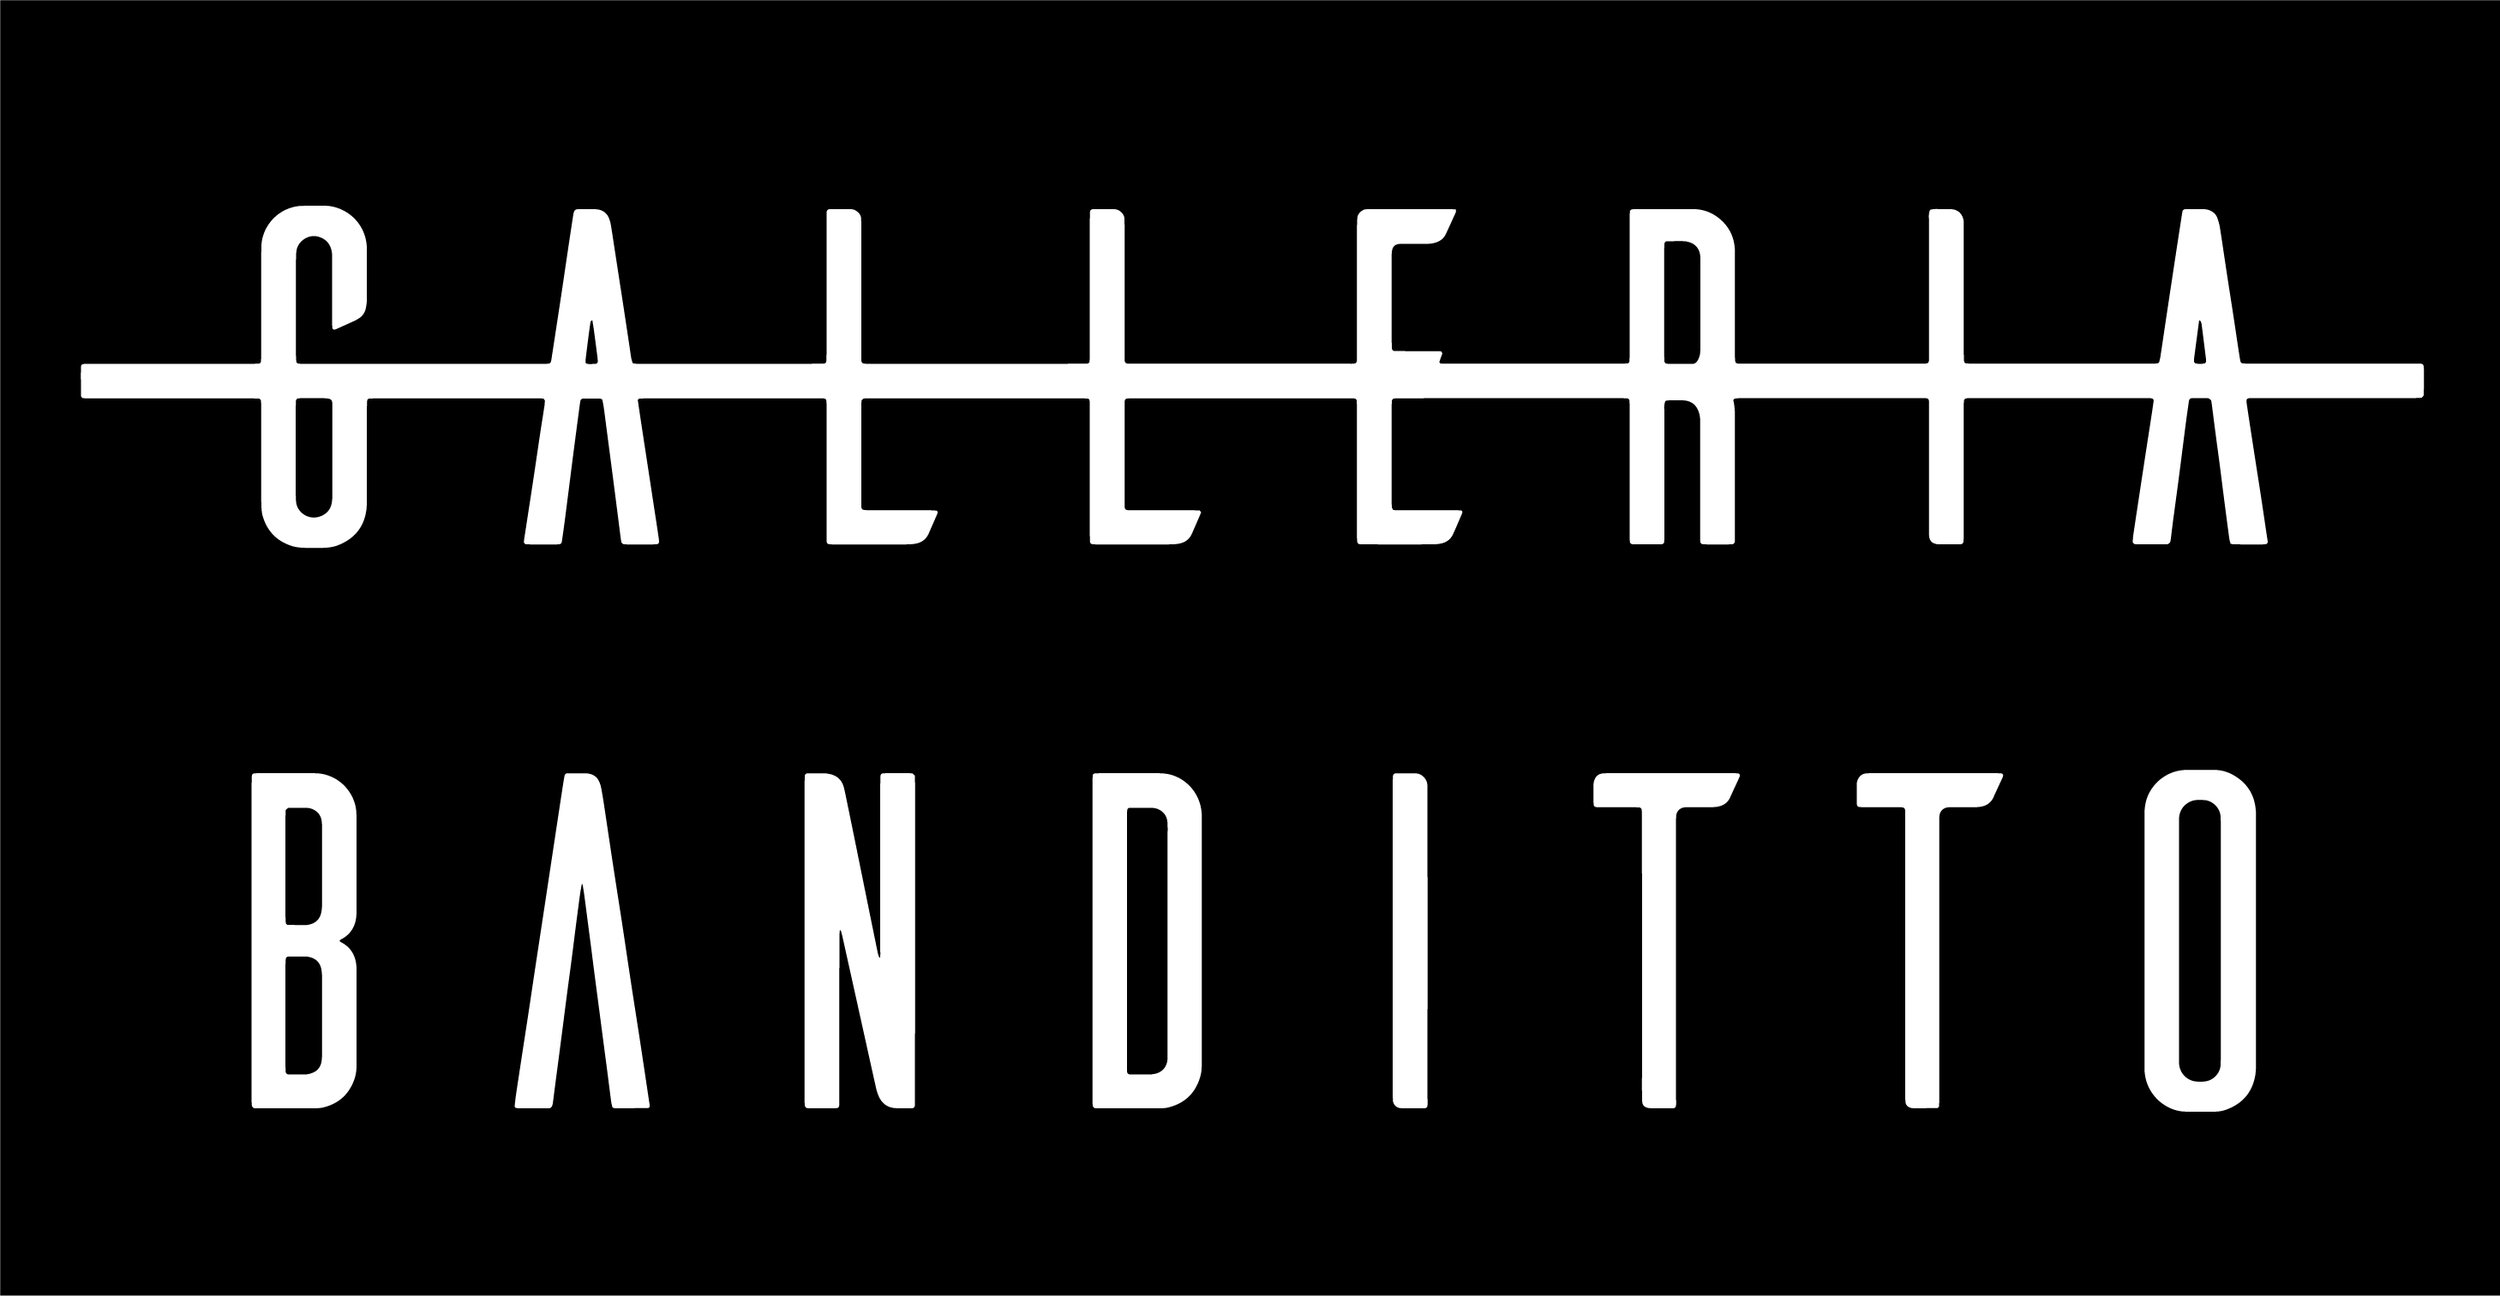 Logo Design, Art Direction and Branding for Bandito Art Gallery    A bold and ballsy visual was required to appeal to the demographic of counterculture artists and collectors worldwide.  By changing the spelling of Bandito to Banditto ('ban' meaning 'to prohibit the use, performance, or distribution of' and 'ditto' meaning 'the same thing again') the name was connected with the mission - to do the unthinkable, the unimaginable - to think beyond the norms, to bend the rules of the art world in favour of artists.  The word 'galleria' is crossed out to emphasise the rebellious nature of the brand.